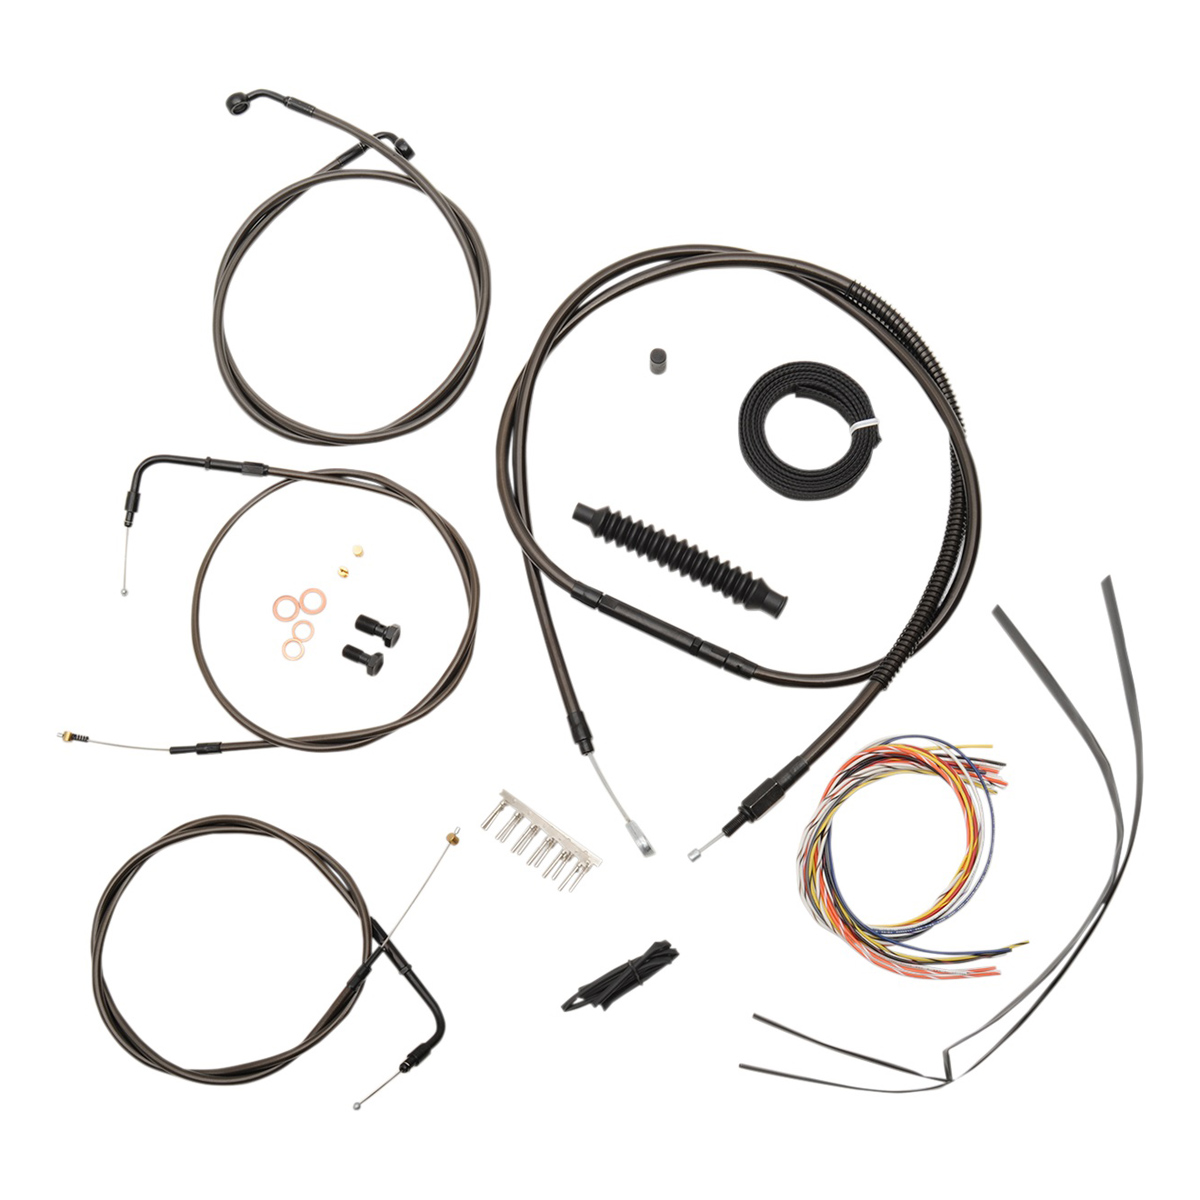 LA Choppers Midnight Complete Cable/Line/Wiring Handlebar Kit for 12″-14″ Bars on Models without ABS